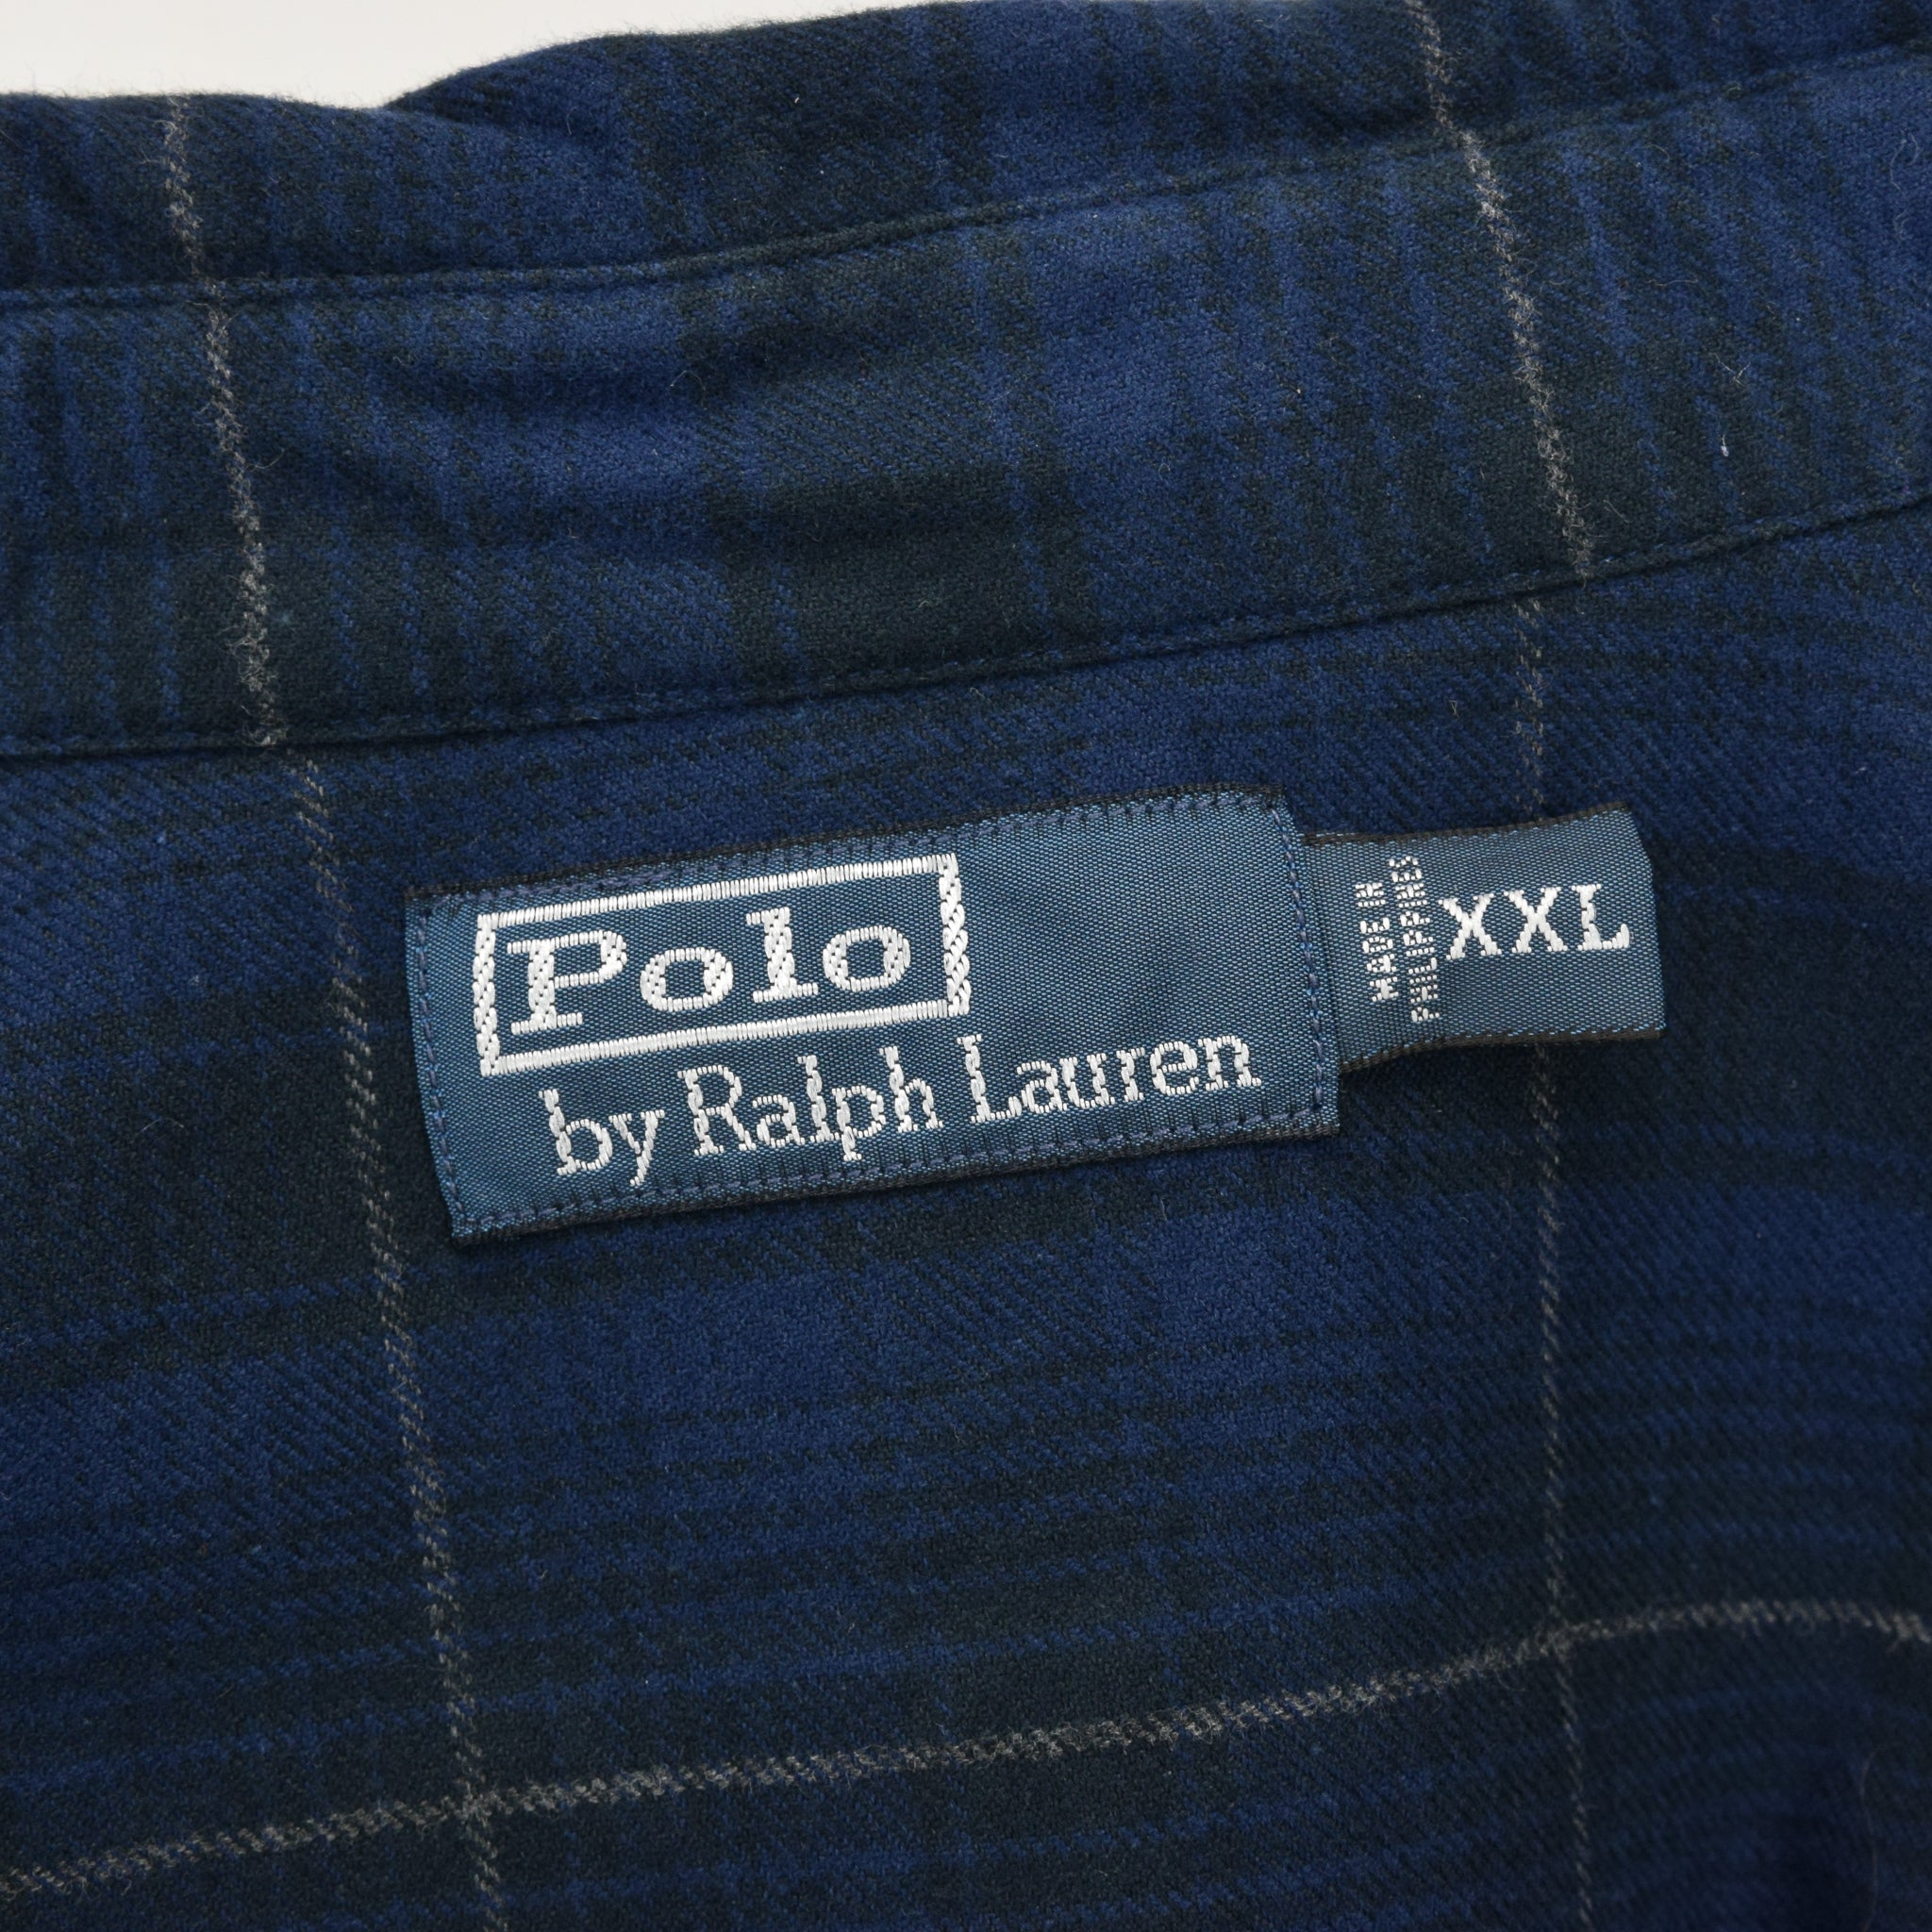 Ralph Lauren Polo Blue Check Cotton Western Style Shirt Long Sleeve XXL label